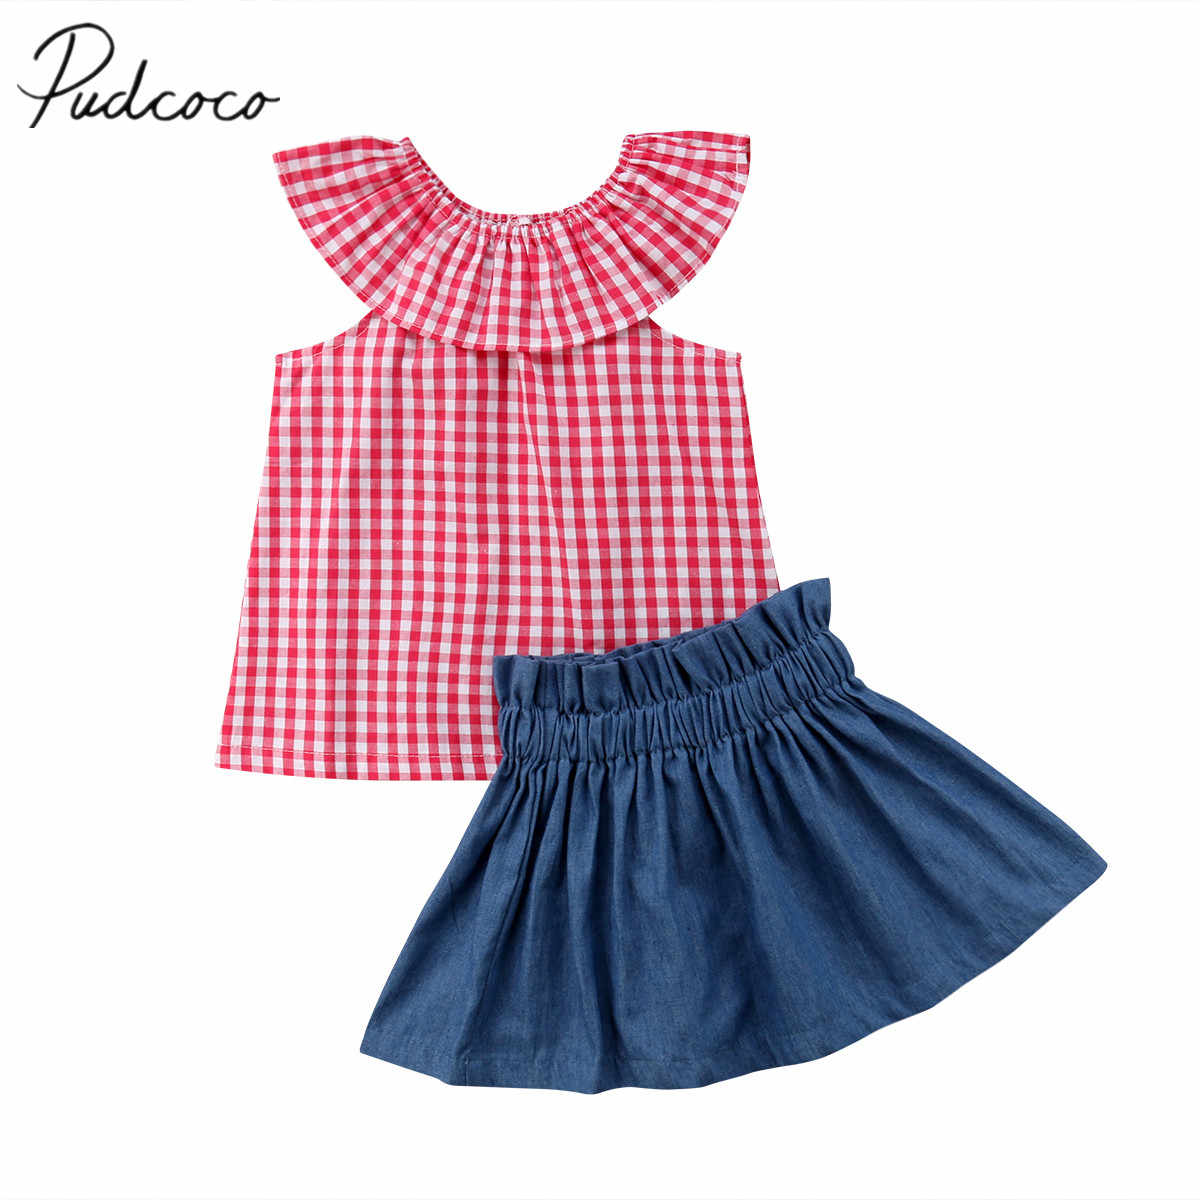 6b3ad6eb2ab3 Detail Feedback Questions about 2018 Brand New Toddler Infant Kids ...